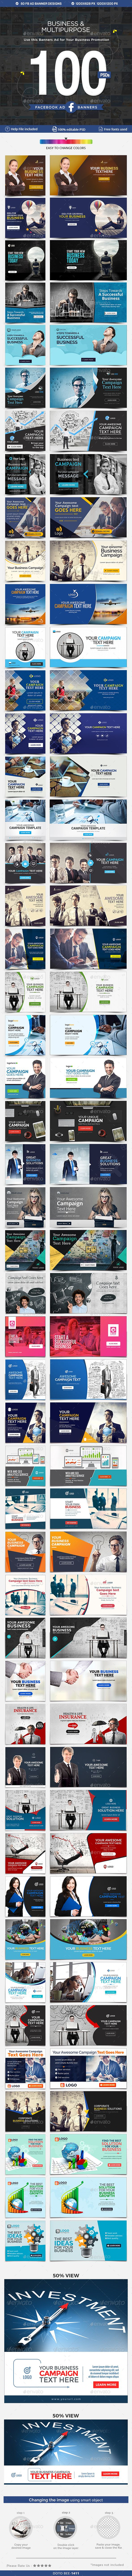 Facebook Ad Banners - 50 Designs - 2 Sizes Each | Psd templates ...